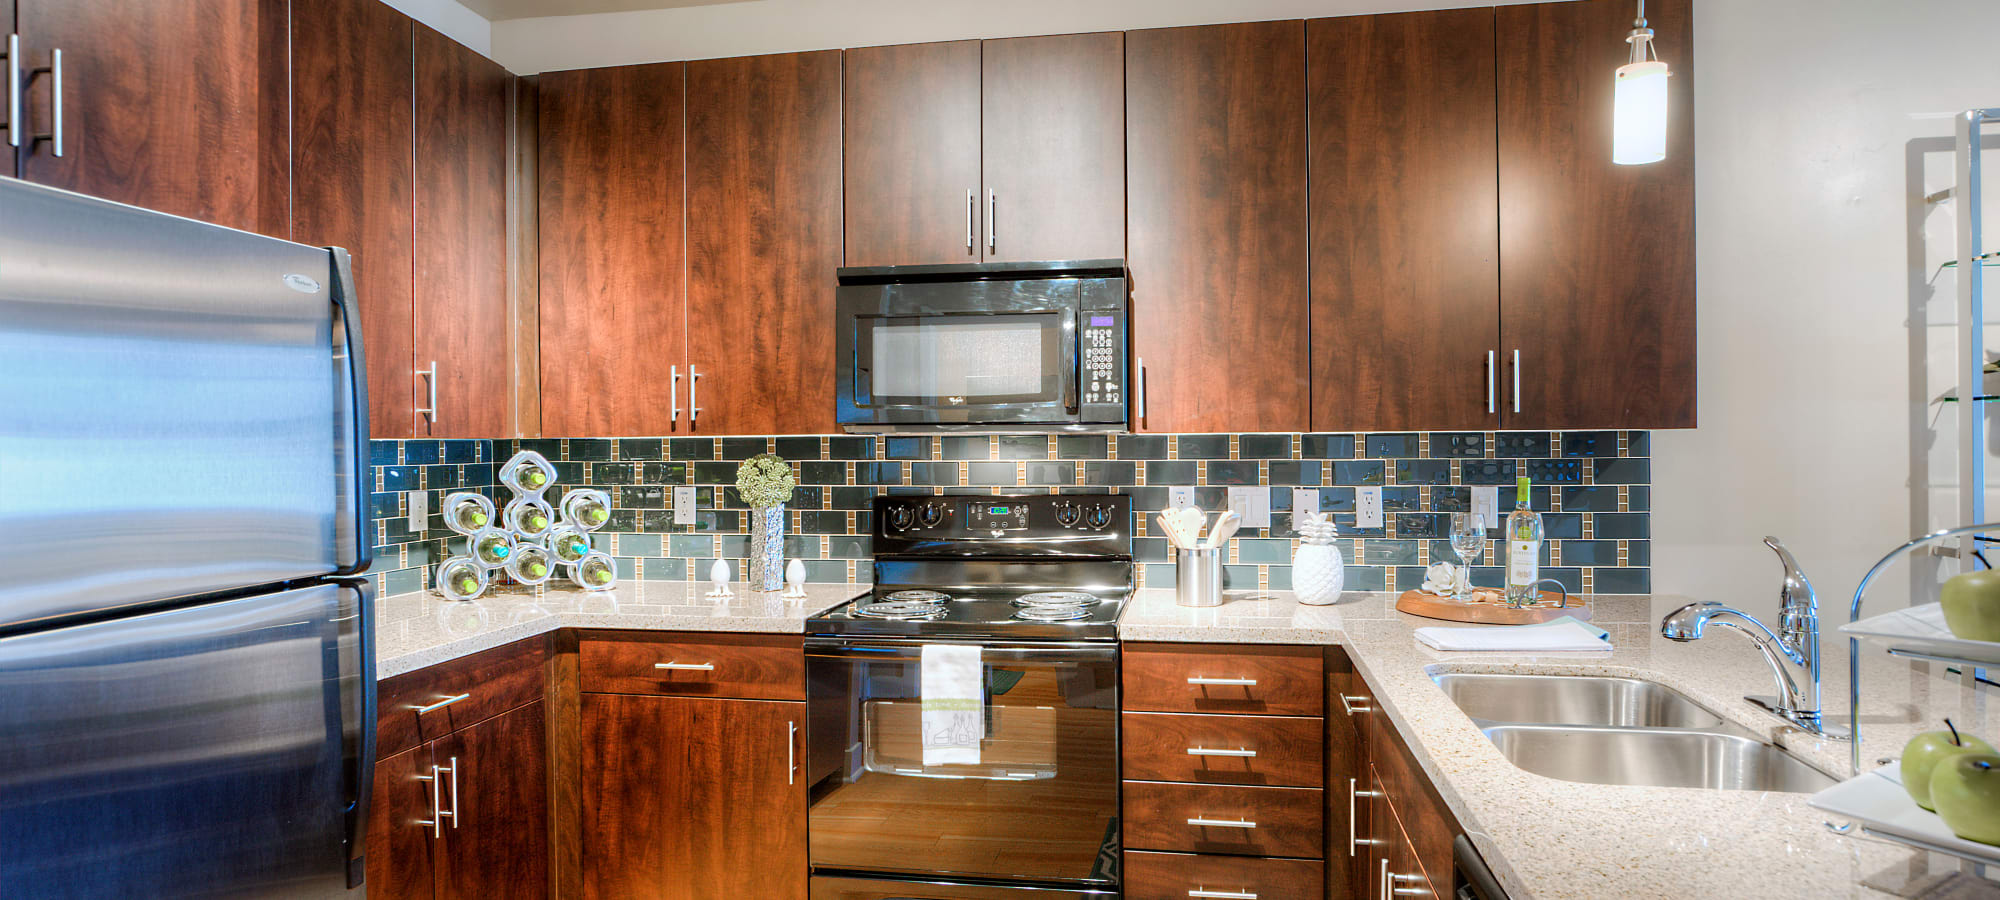 Beautiful wood cabinetry and subway tile backsplash in gourmet kitchen of model home at Level at Sixteenth in Phoenix, Arizona